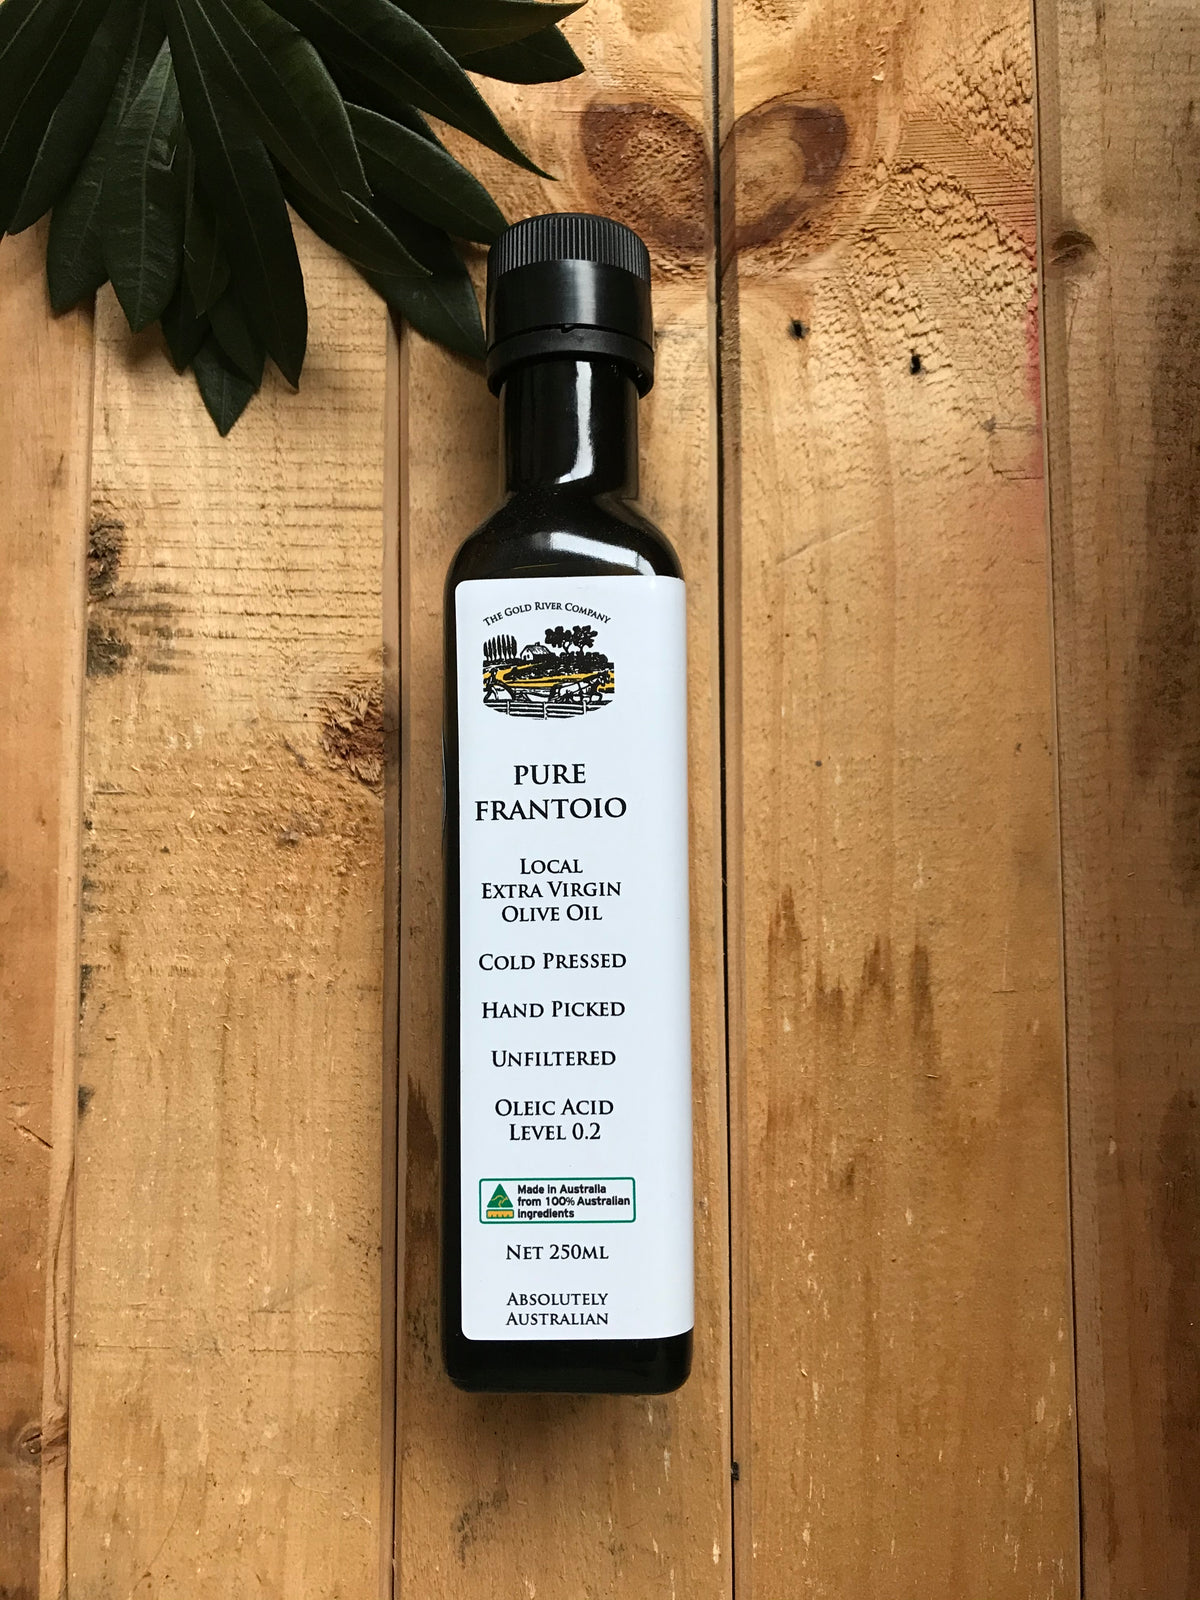 Pure Frantoio Local Extra Virgin Olive Oil 250ml | Vaughans Cafe Deli & Online Store | Inverloch